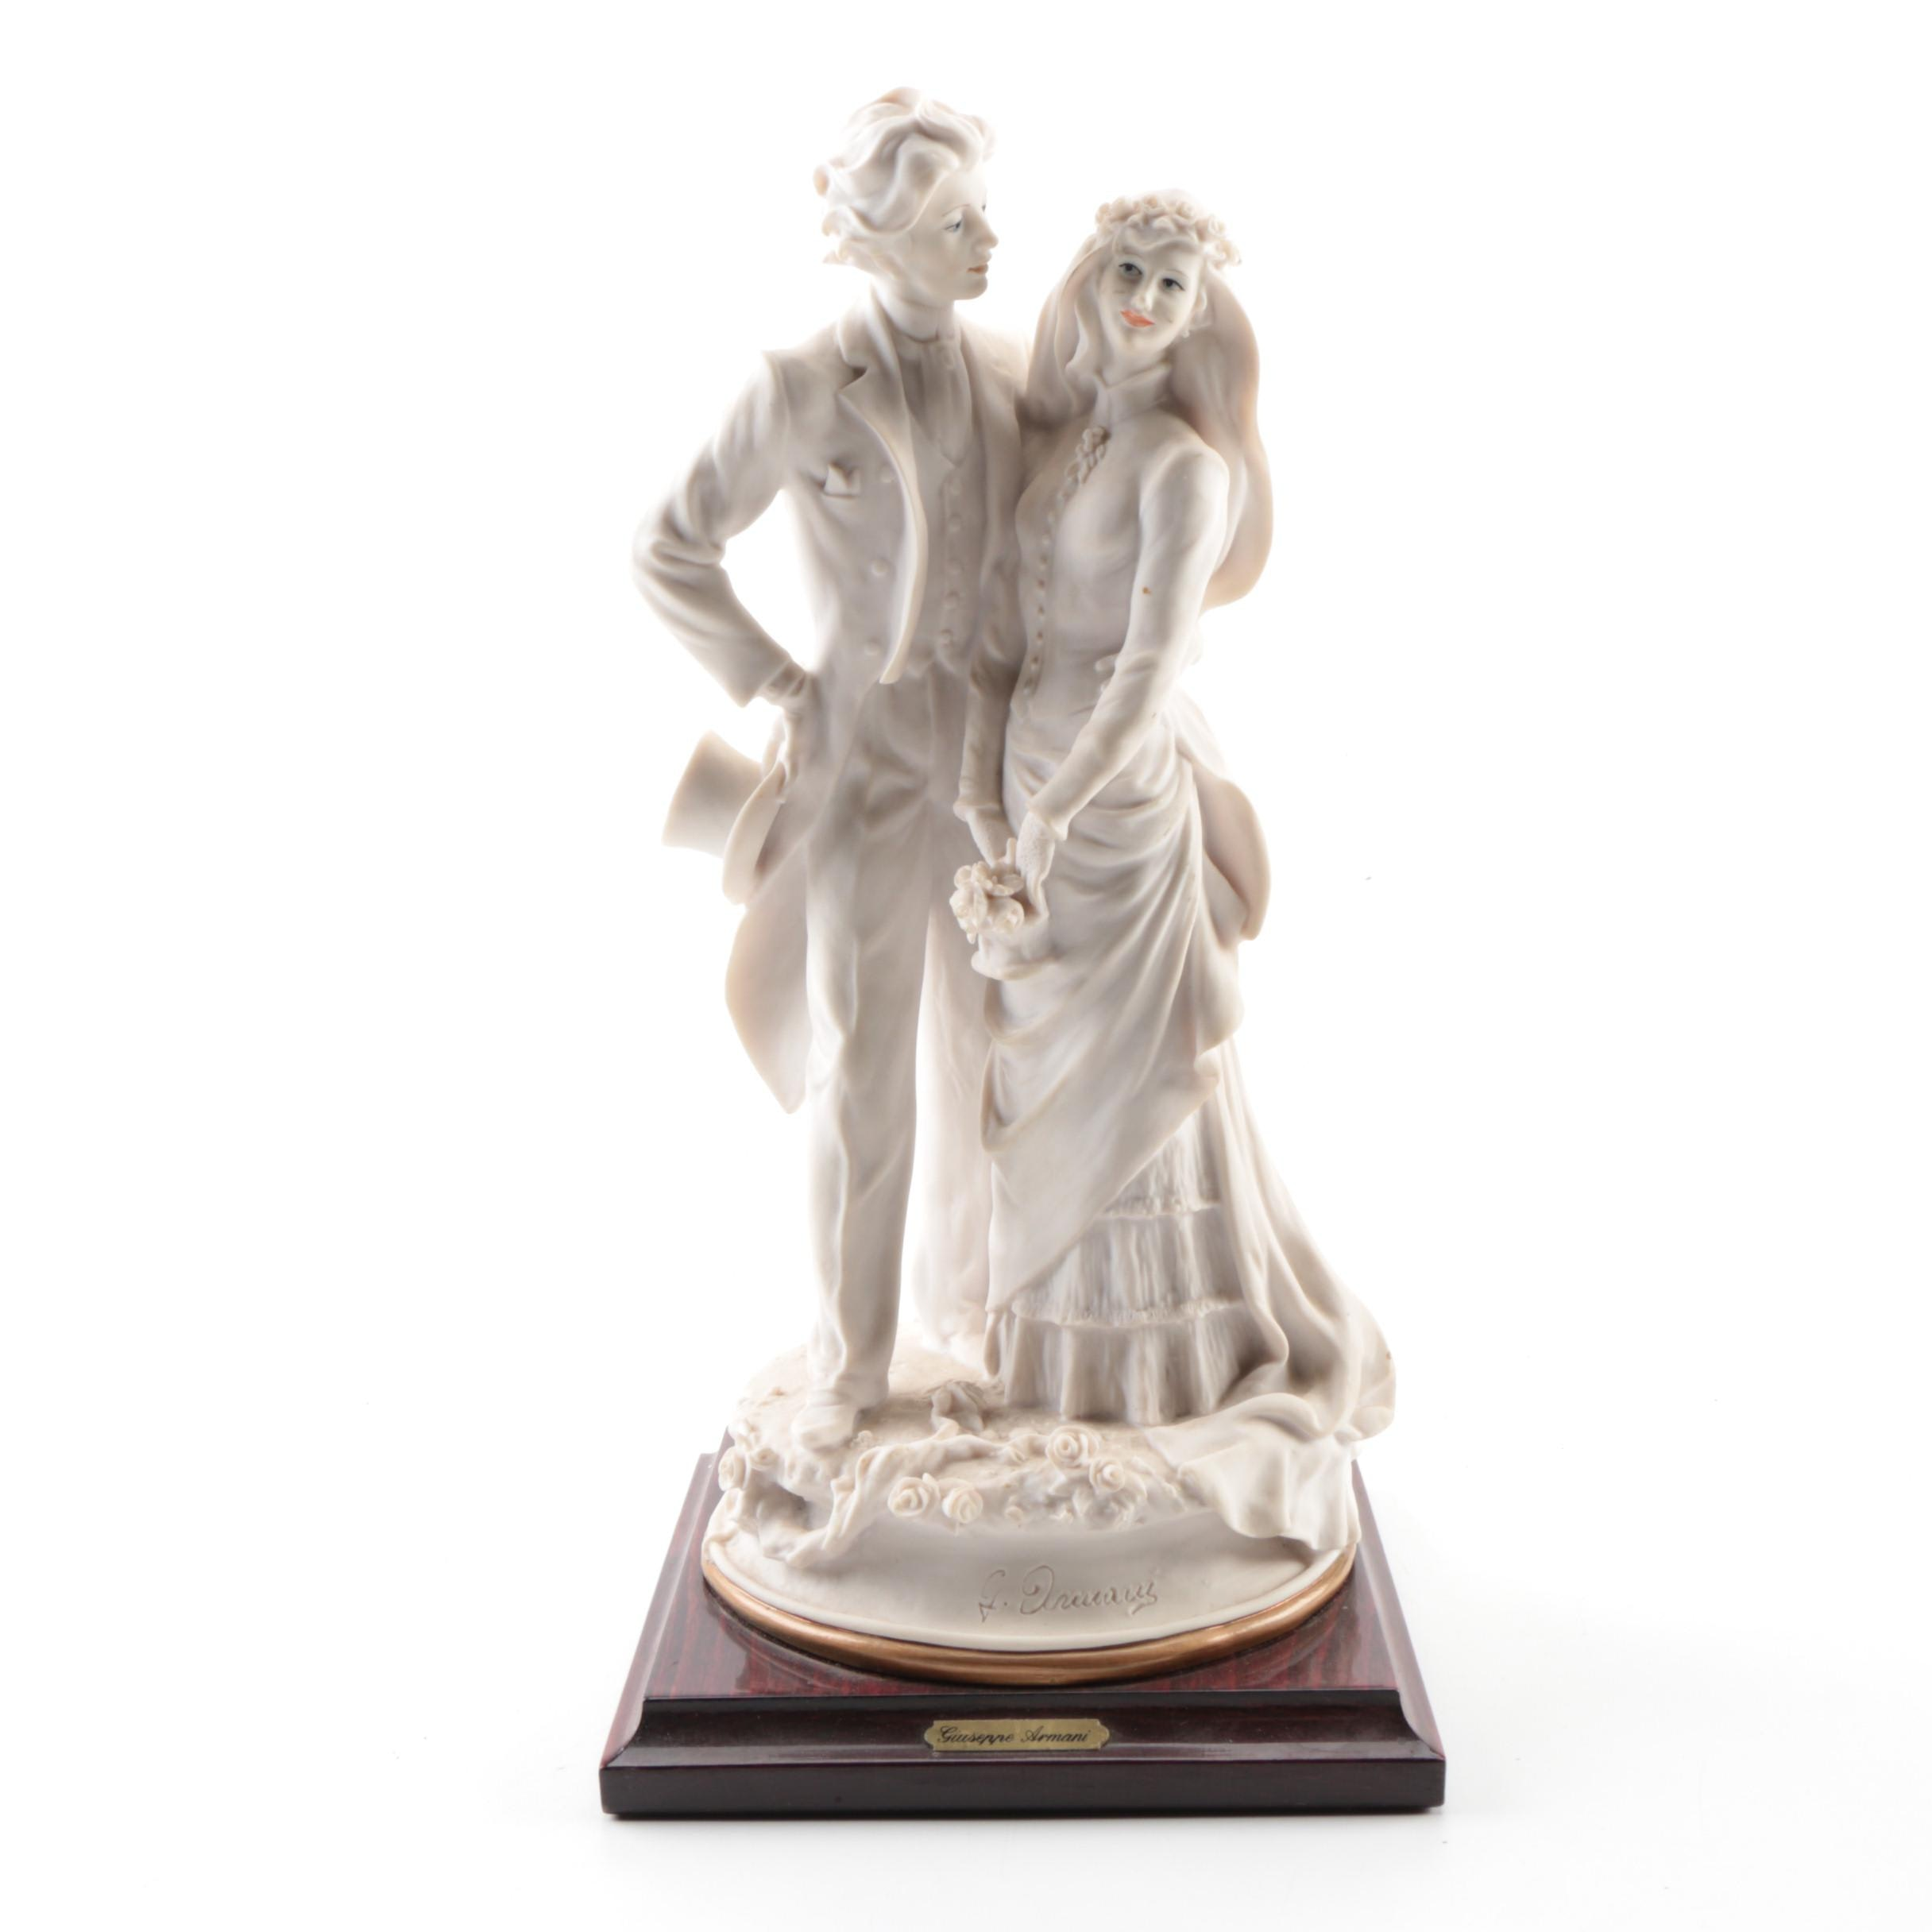 Capodimonte Giuseppe Armani Figurine of Wedding Couple